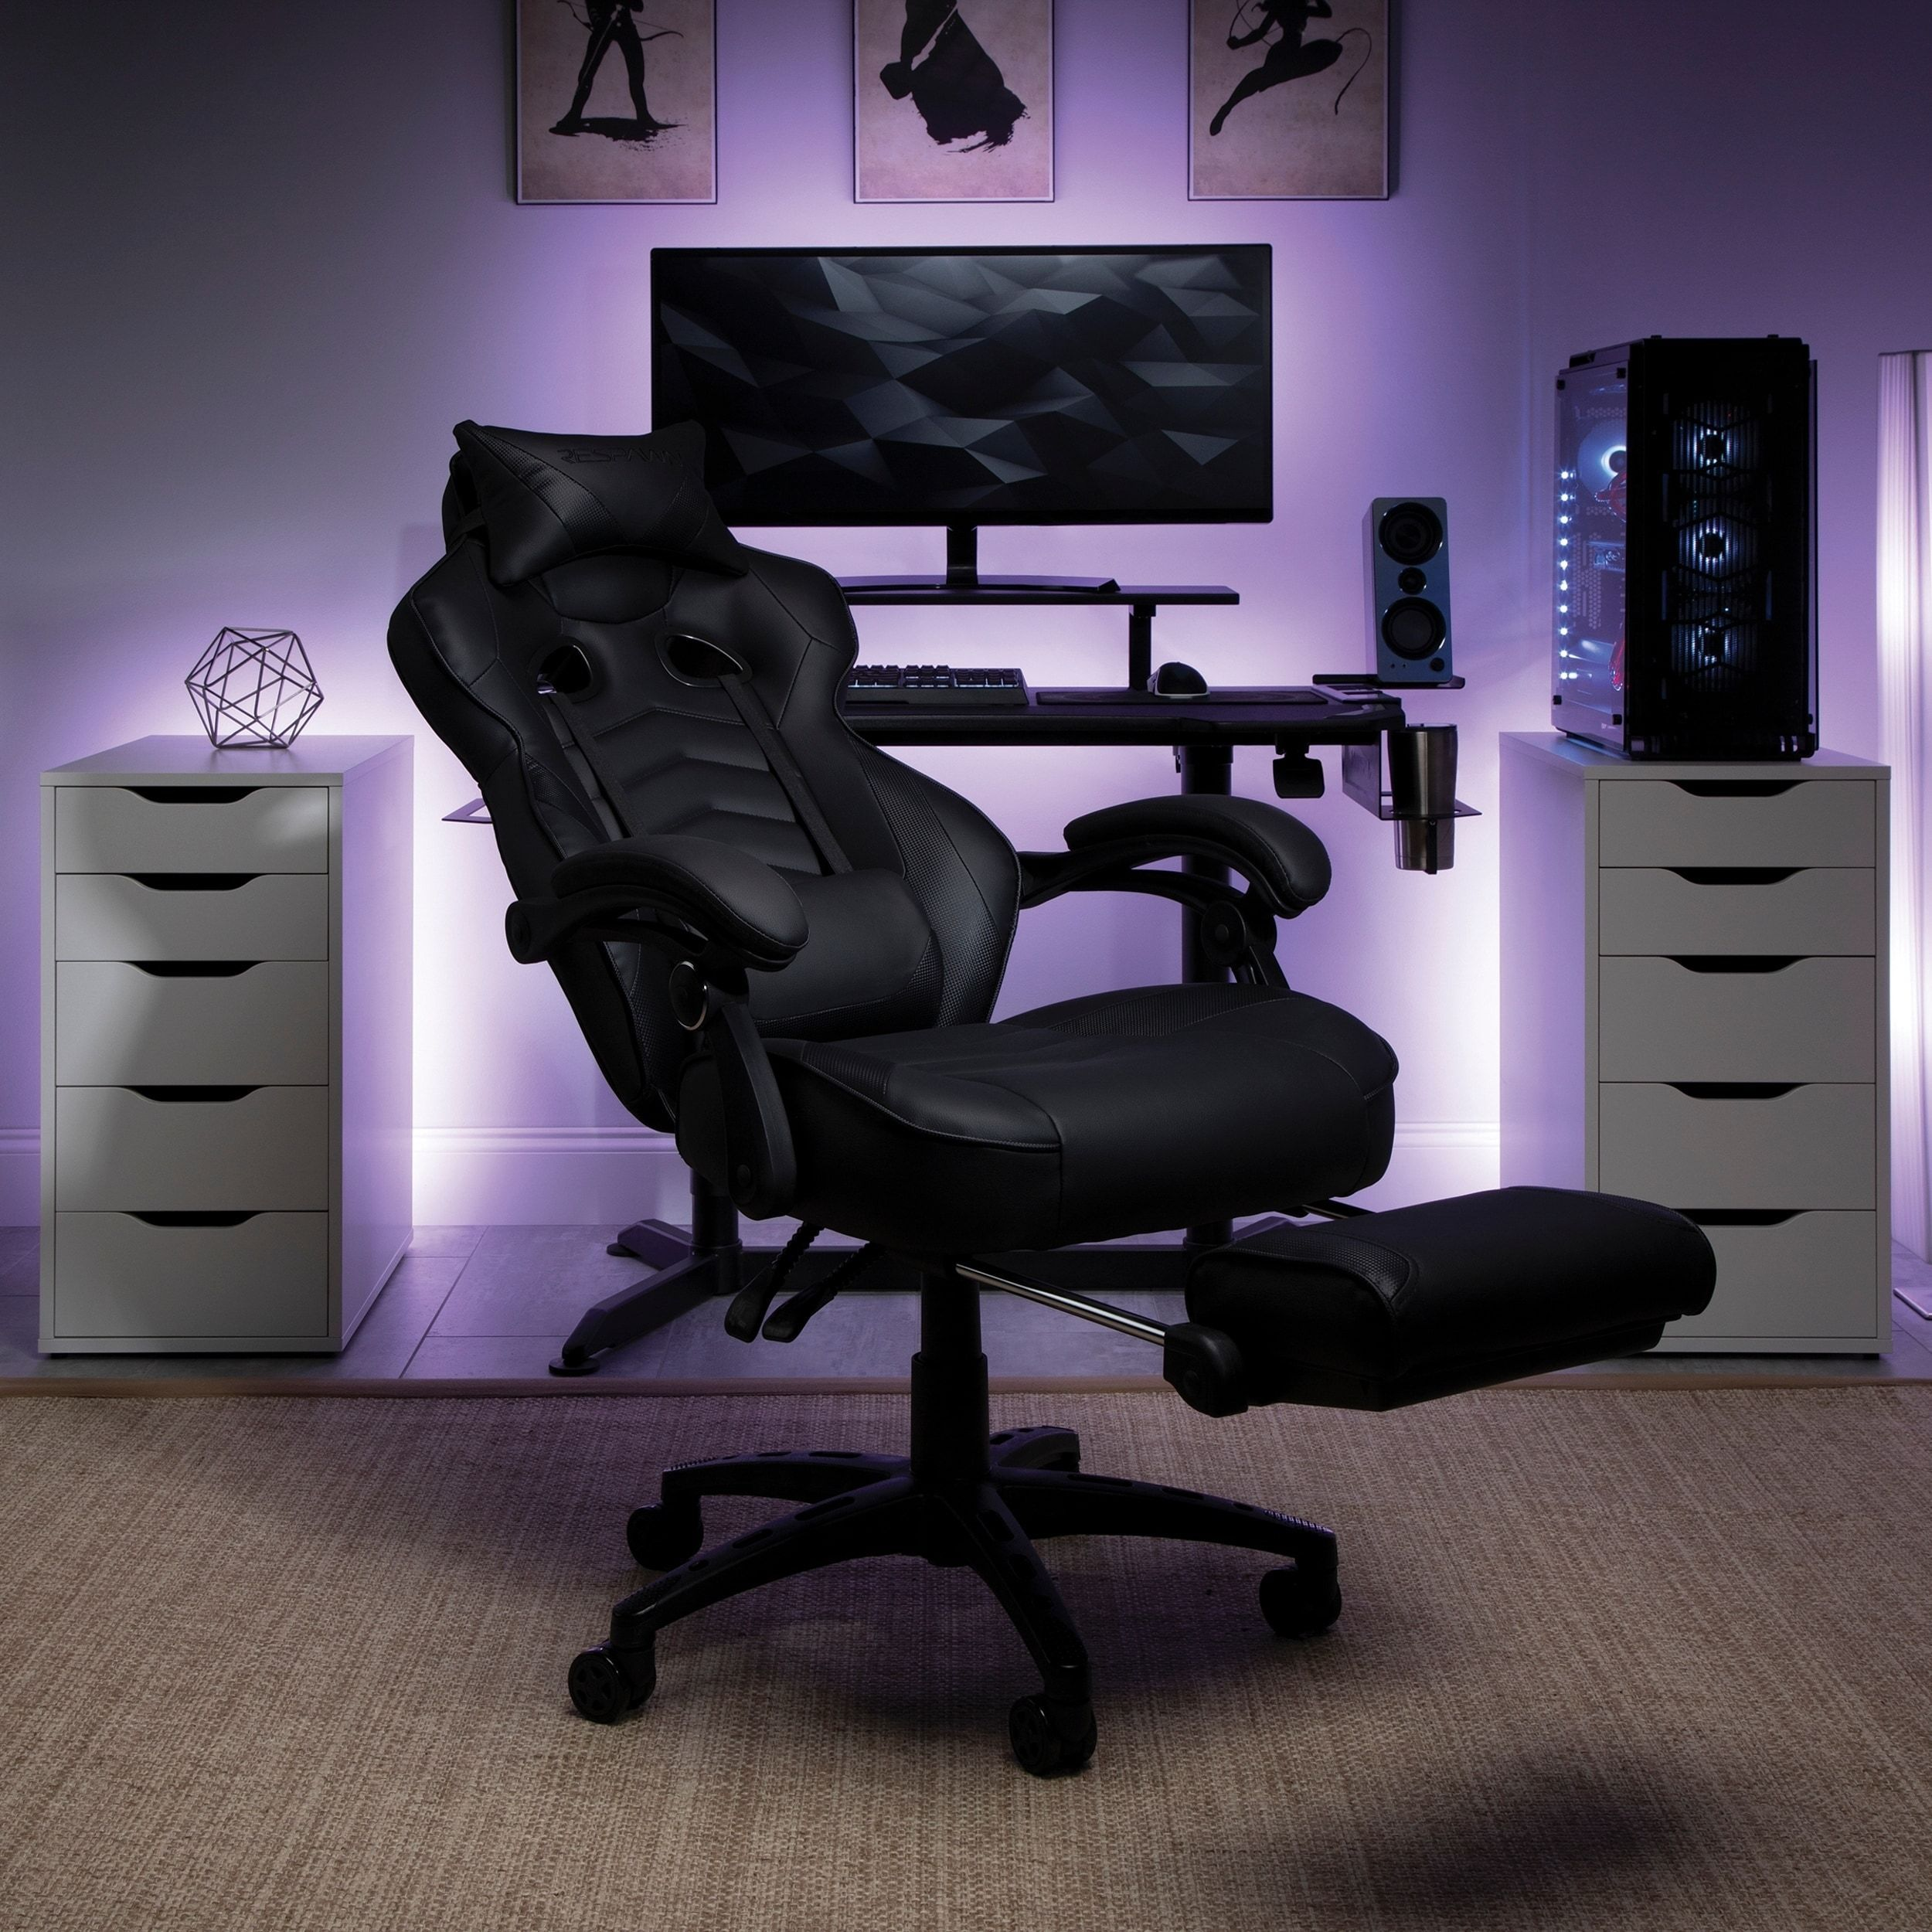 Chair Gaming Gaming Chair Ideas Racing Respawn Style In 2020 Gaming Chair Bedroom Setup Chair